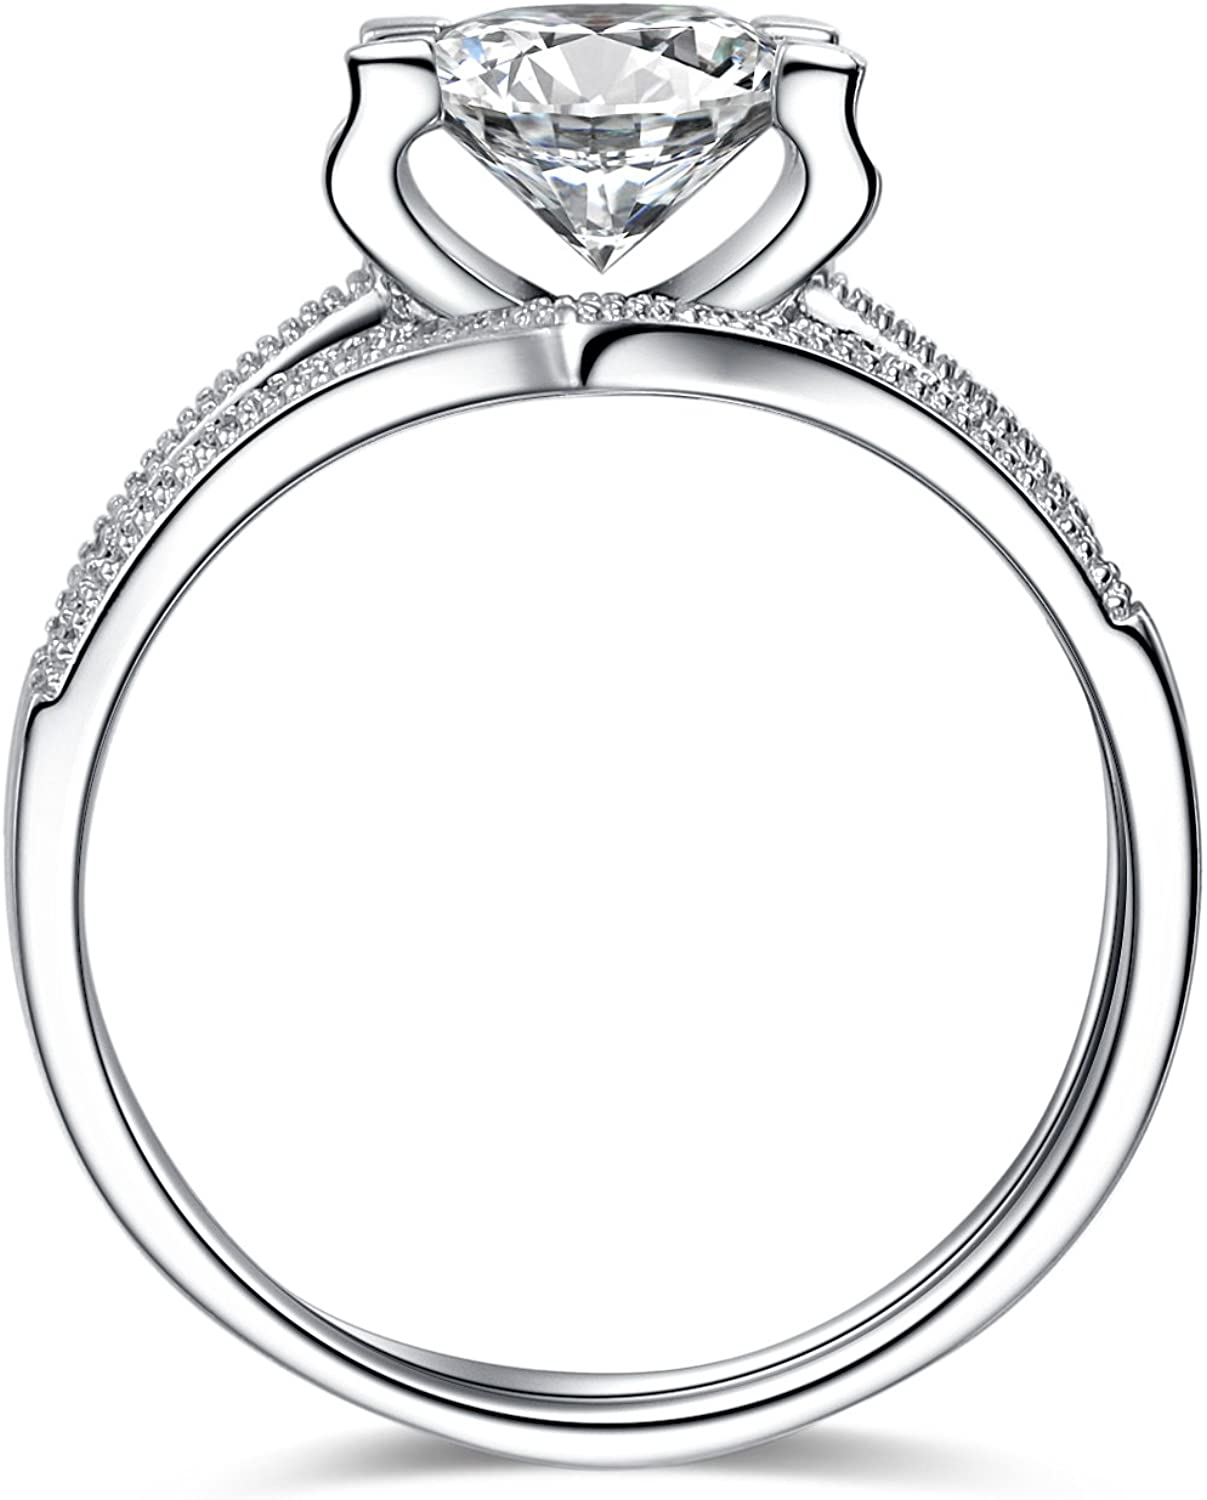 VIKI LYNN Engagement Rings for Women 1ct Cubic Zirconia Sterling Silver Ring